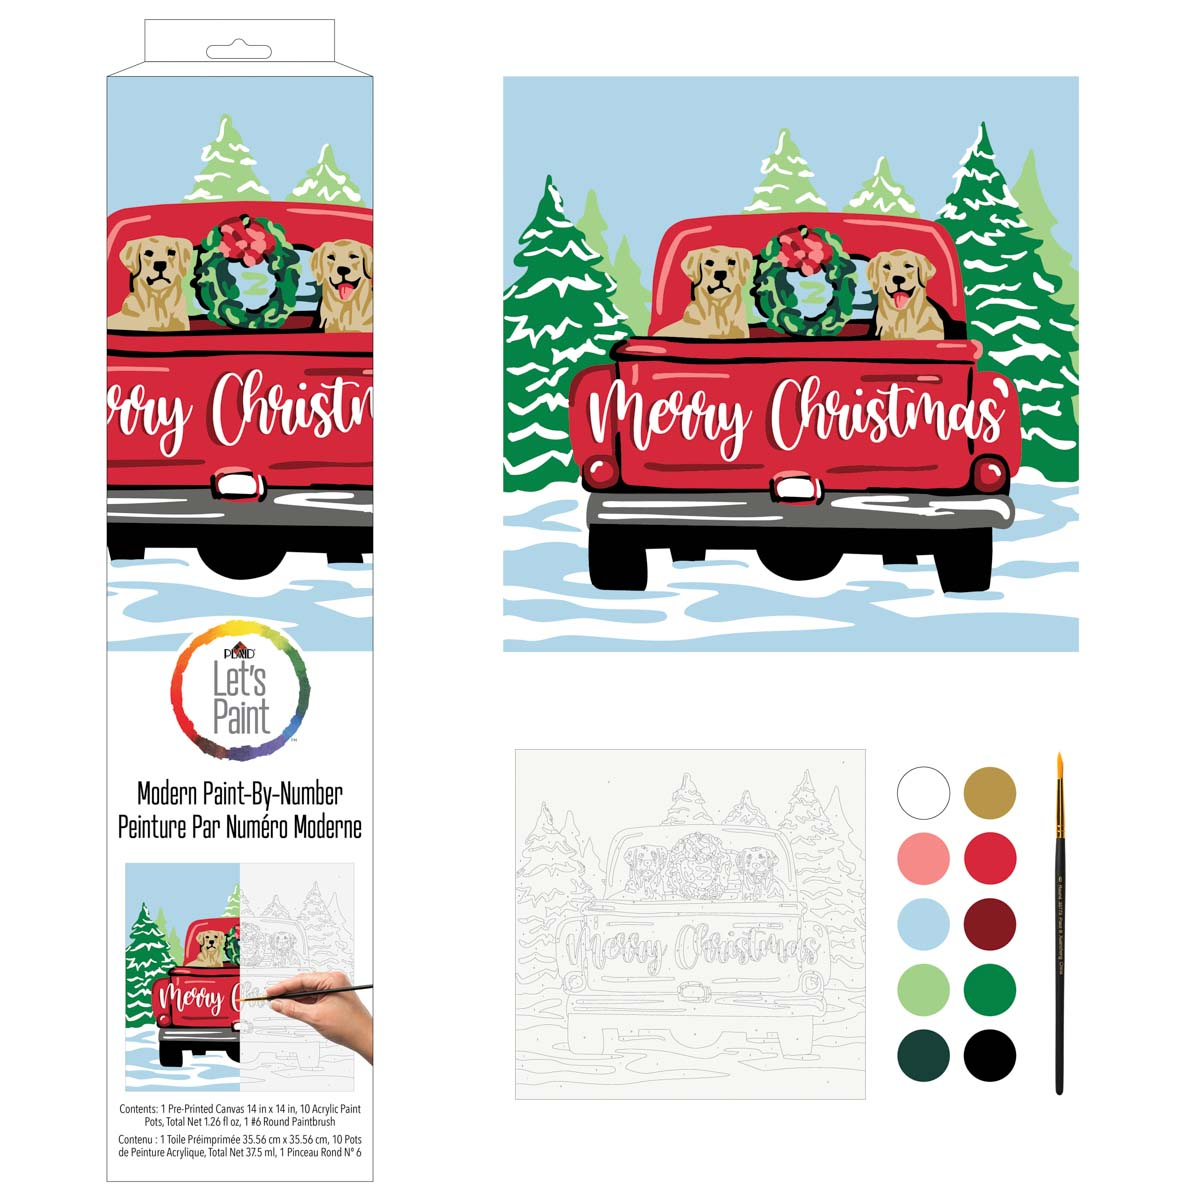 Plaid ® Let's Paint™ Modern Paint-by-Number - Christmas Labs - 17925